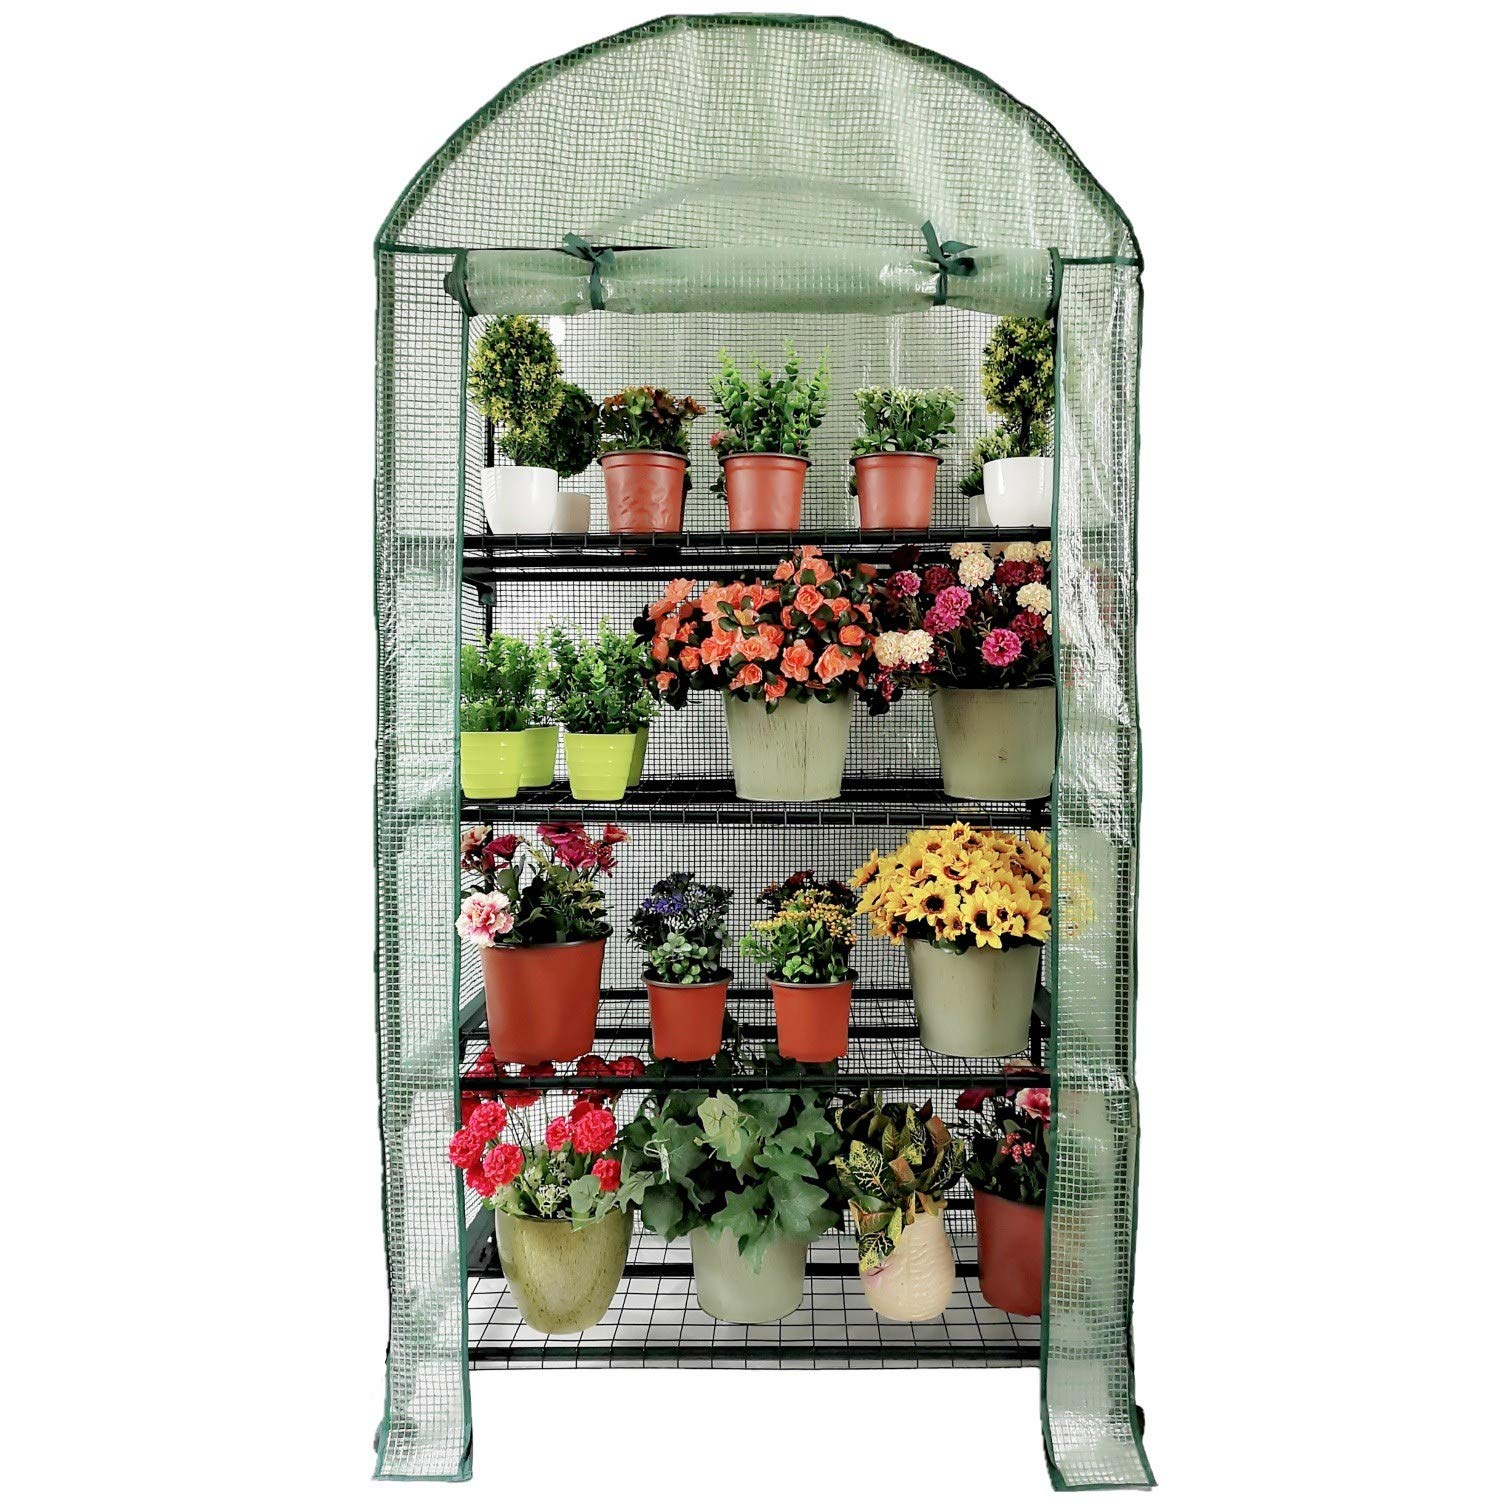 OUTOUR Wider 35x19.6x66.5in 4 Tier Wider Portable Plant Mini Greenhouse Green House with Casters, for Growing Seeds, Seedlings, Tending Potted Plants, Garden Gardening Indoor Outdoor